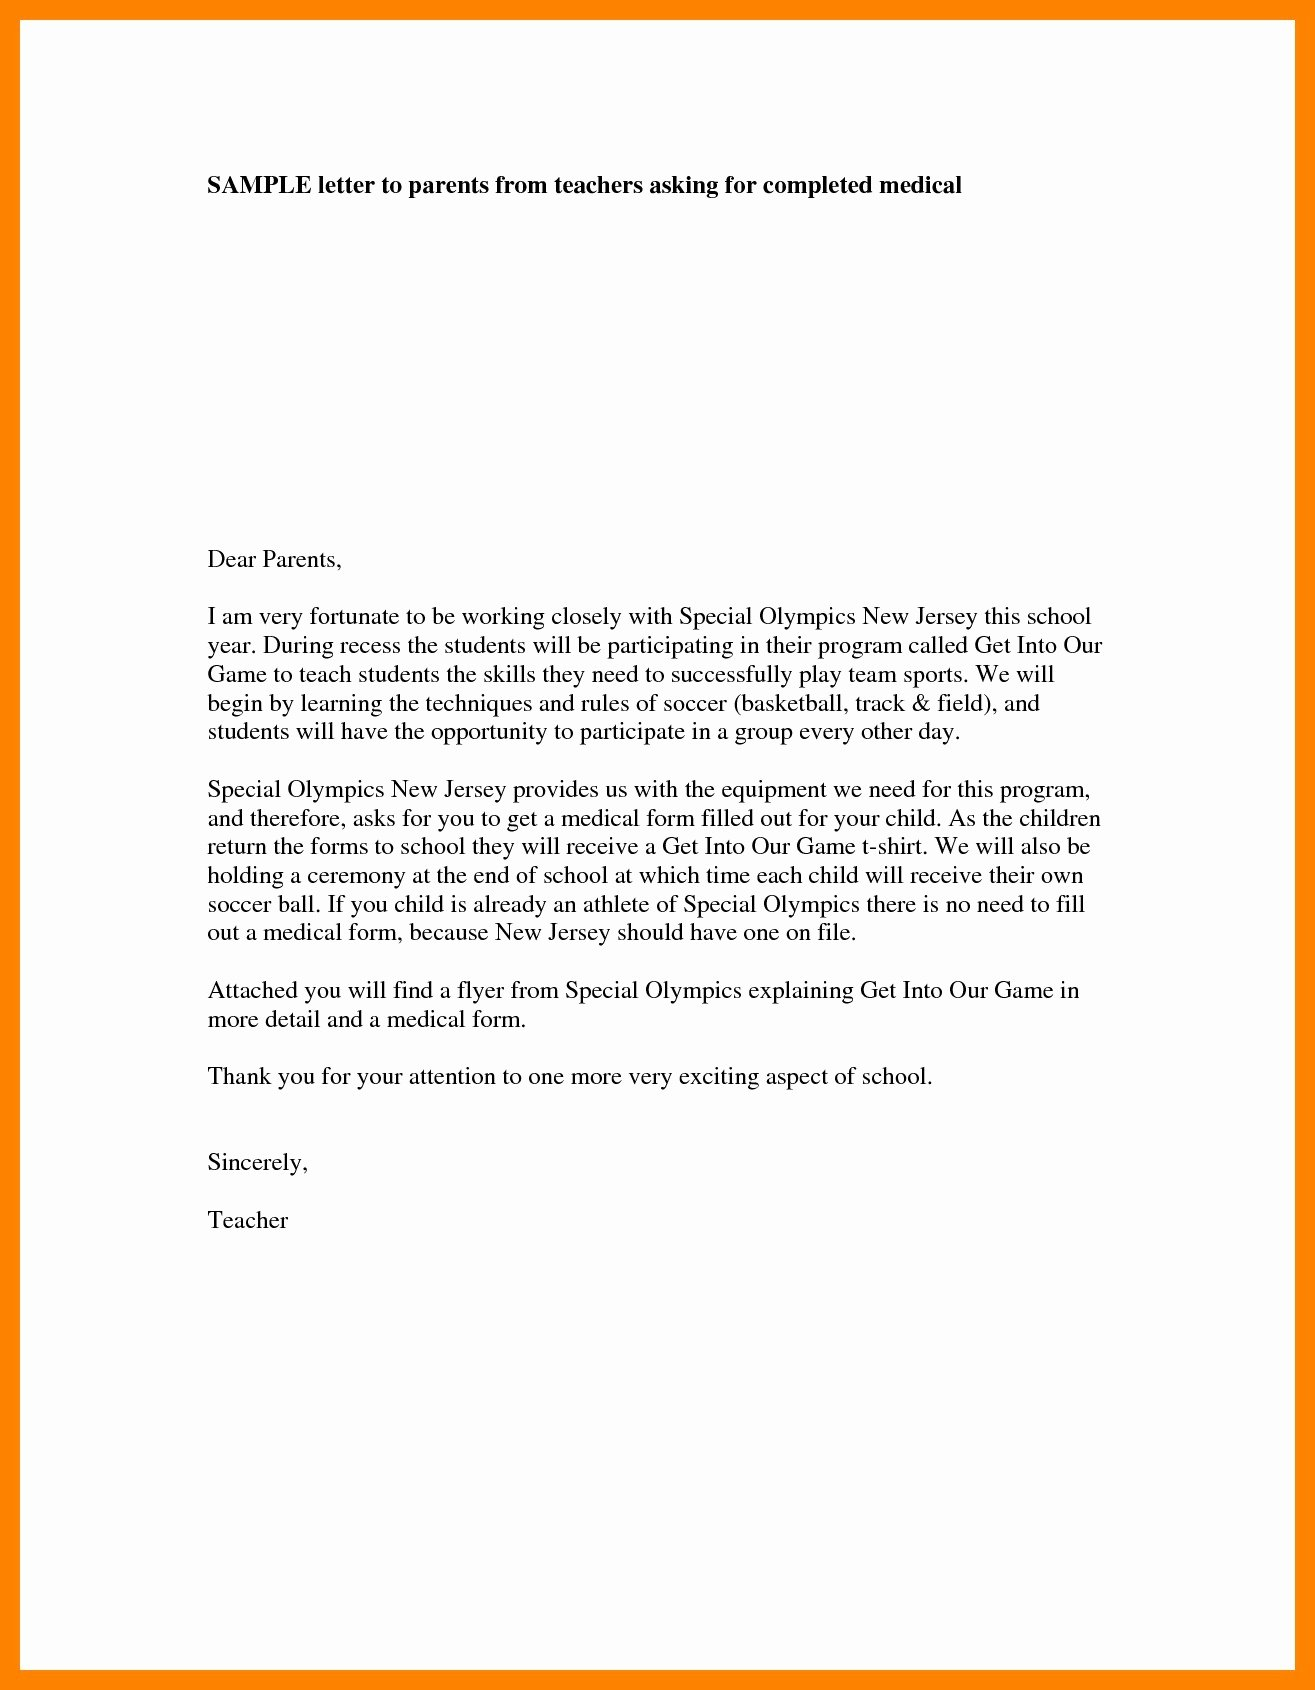 Letter to Parents Template Elegant Preschool Wel E Letter to Parents From Teacher Template